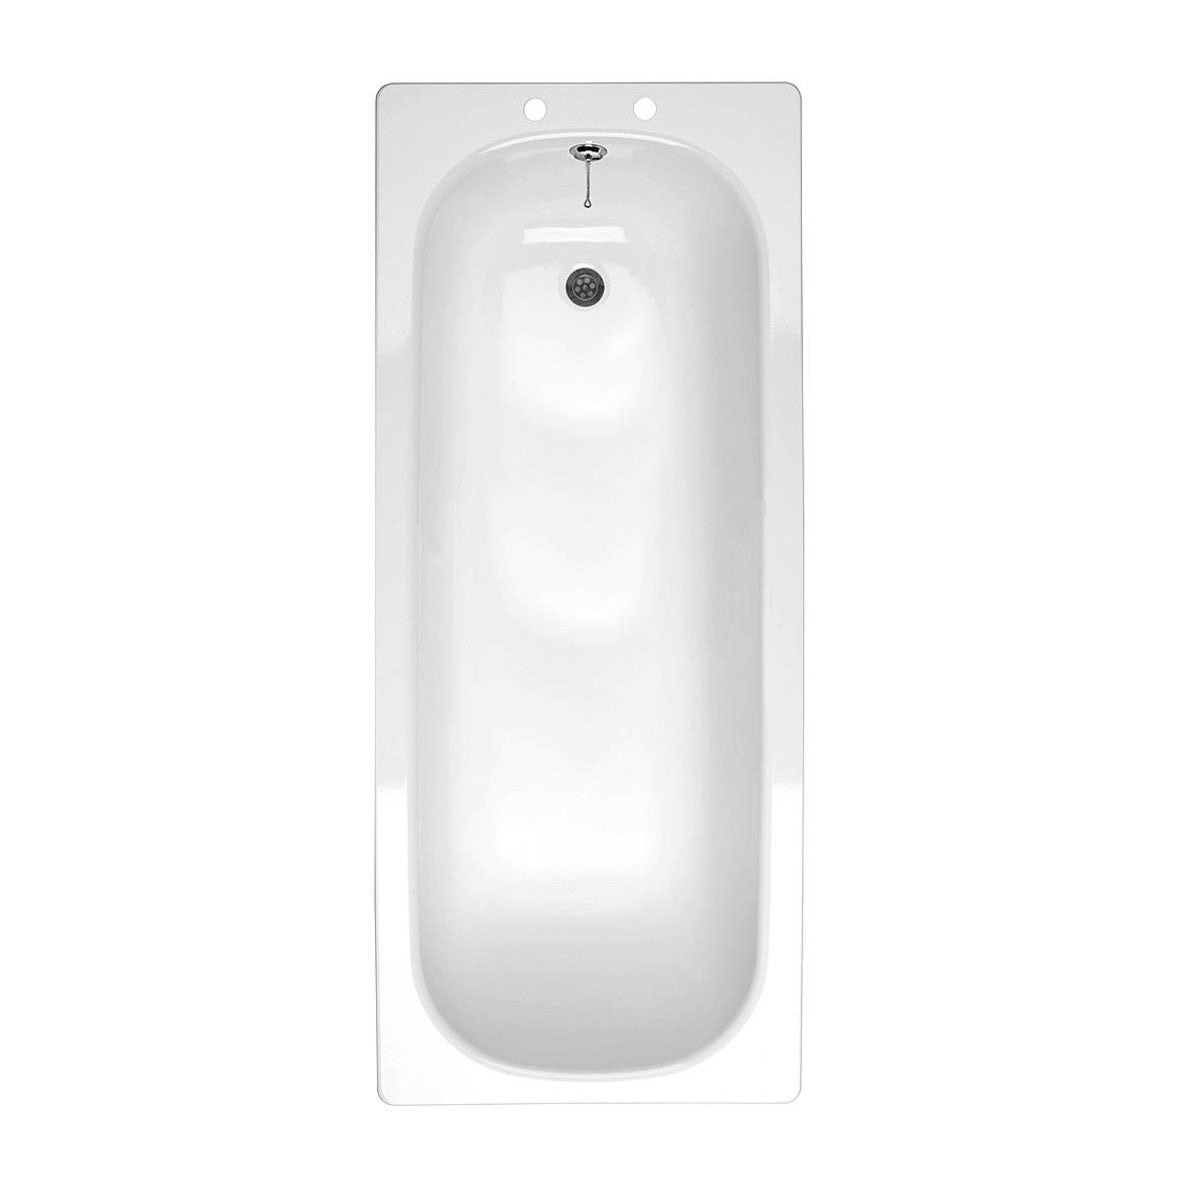 Clarity Steel bath 1700 x 700